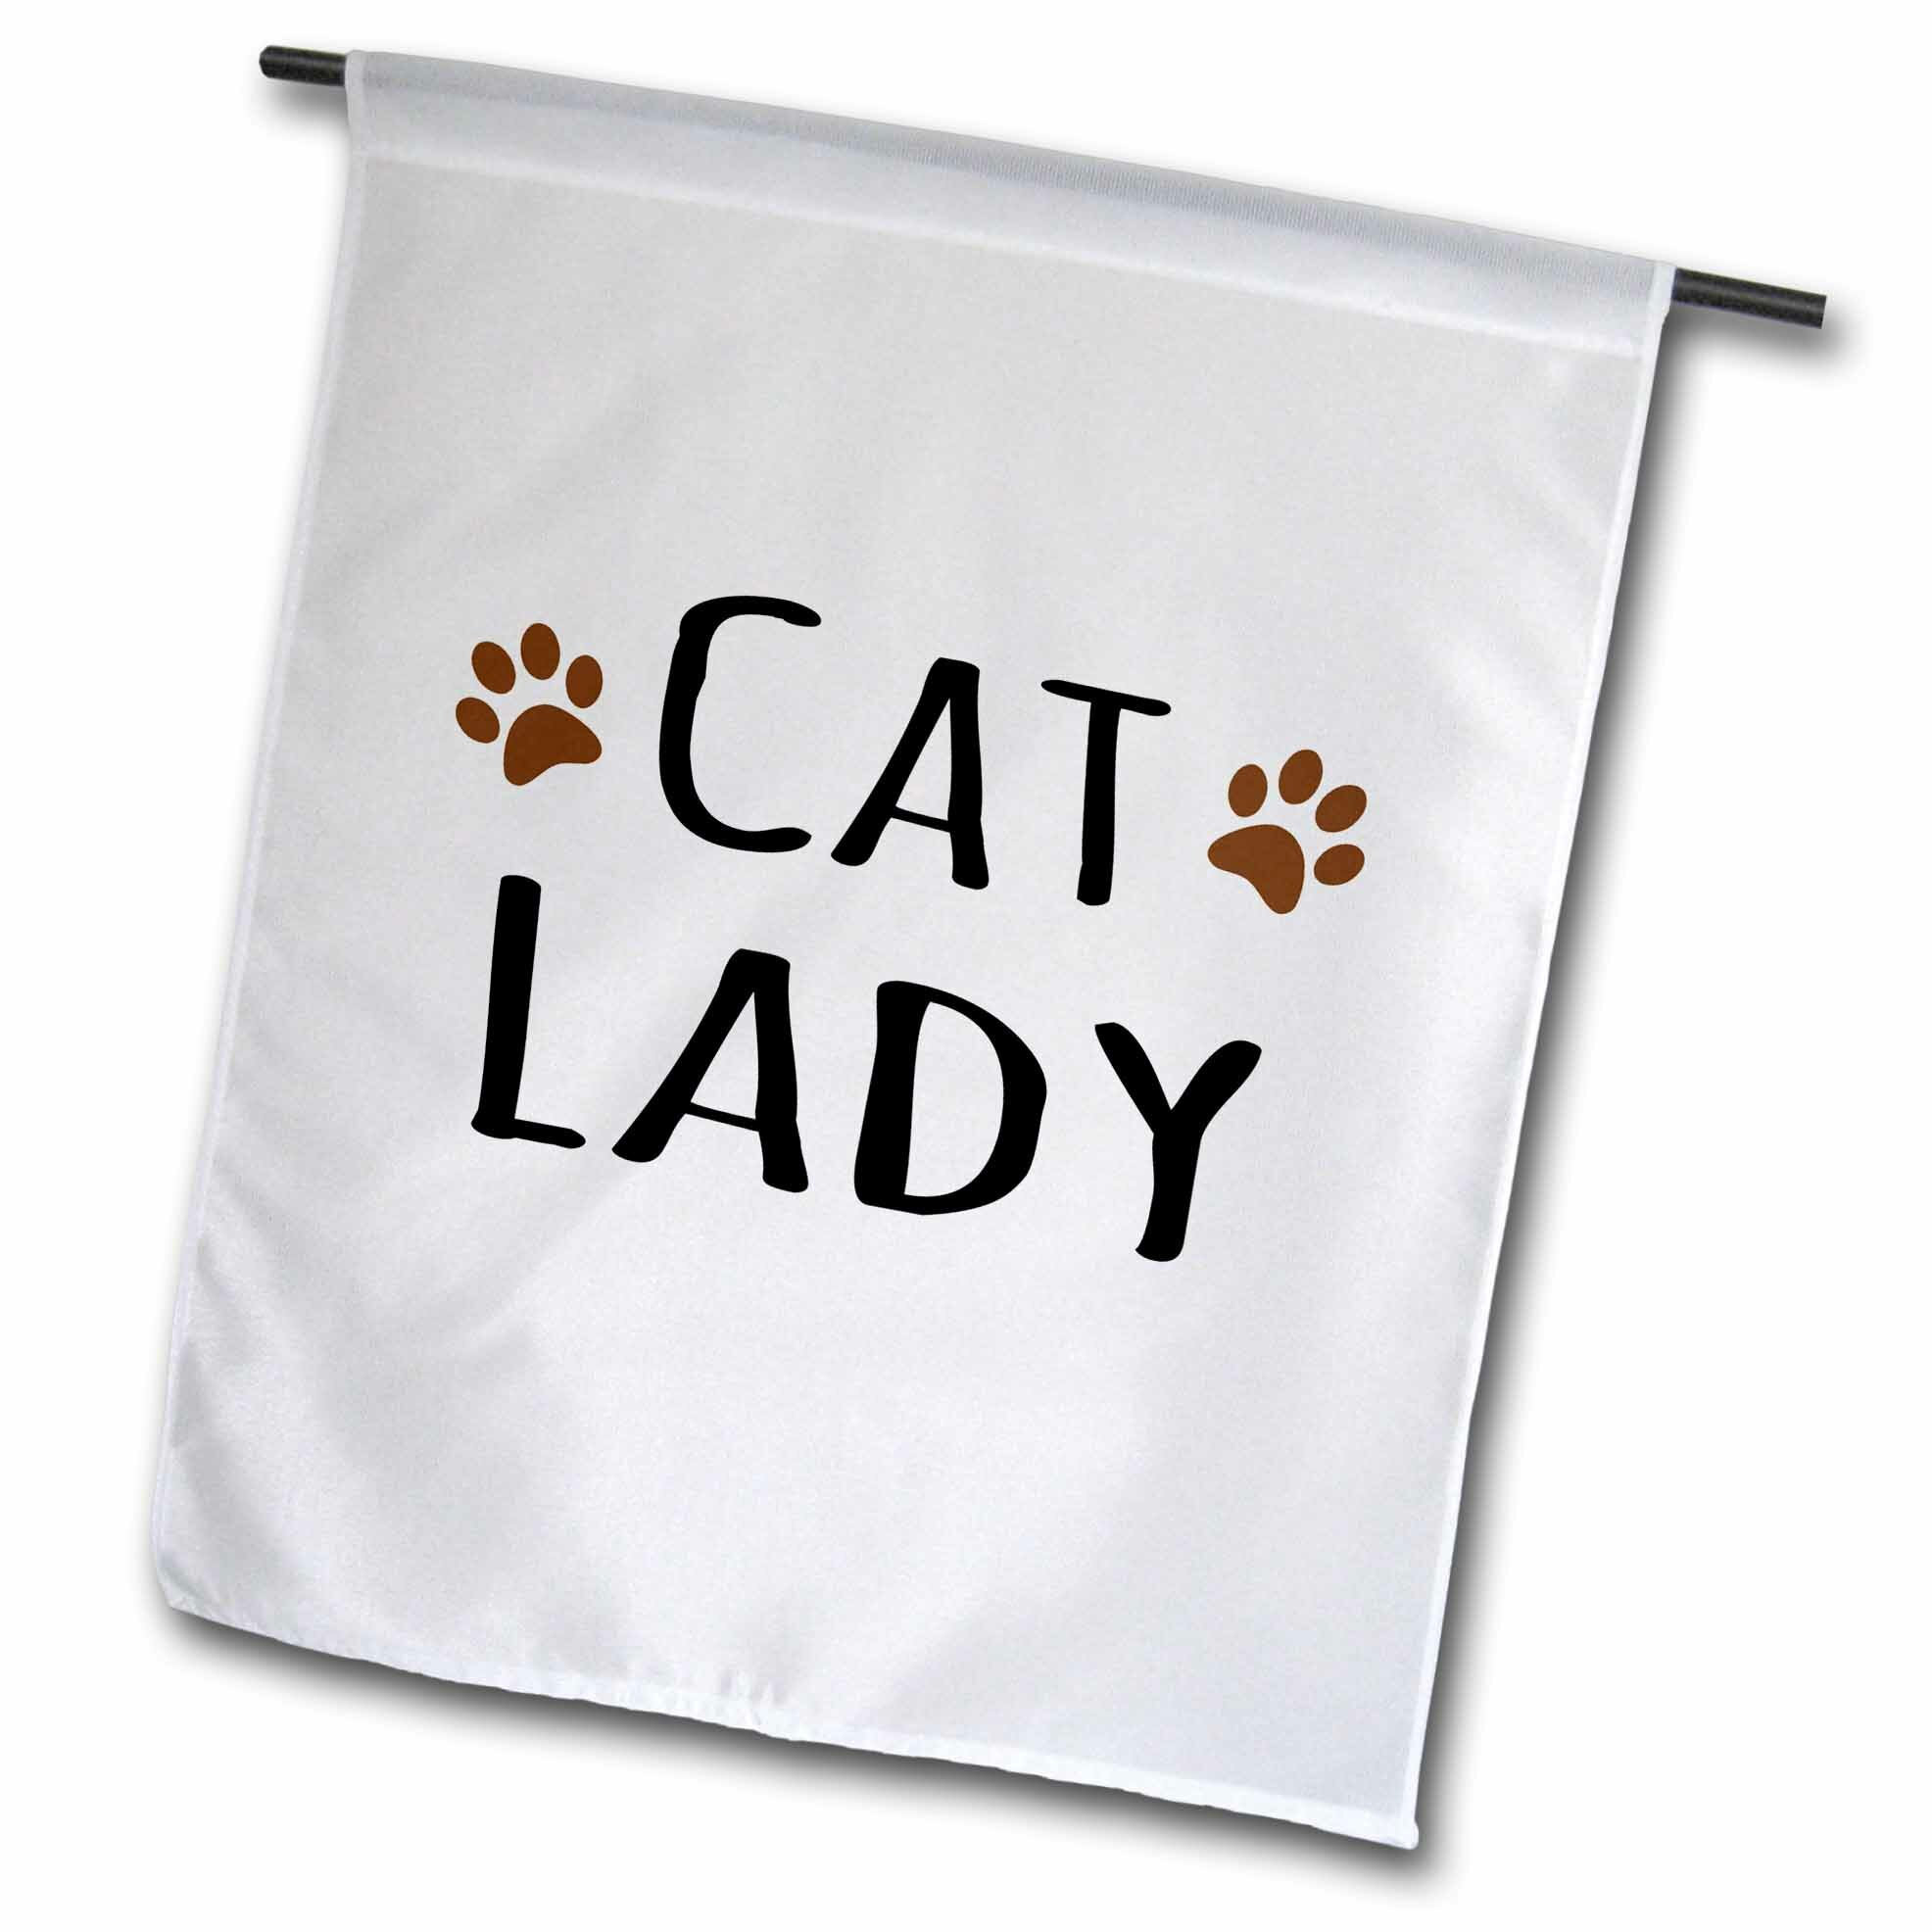 3drose Cat Lady Funny Design For Kitty Lovers Polyester 18 X 12 In Garden Flag Wayfair